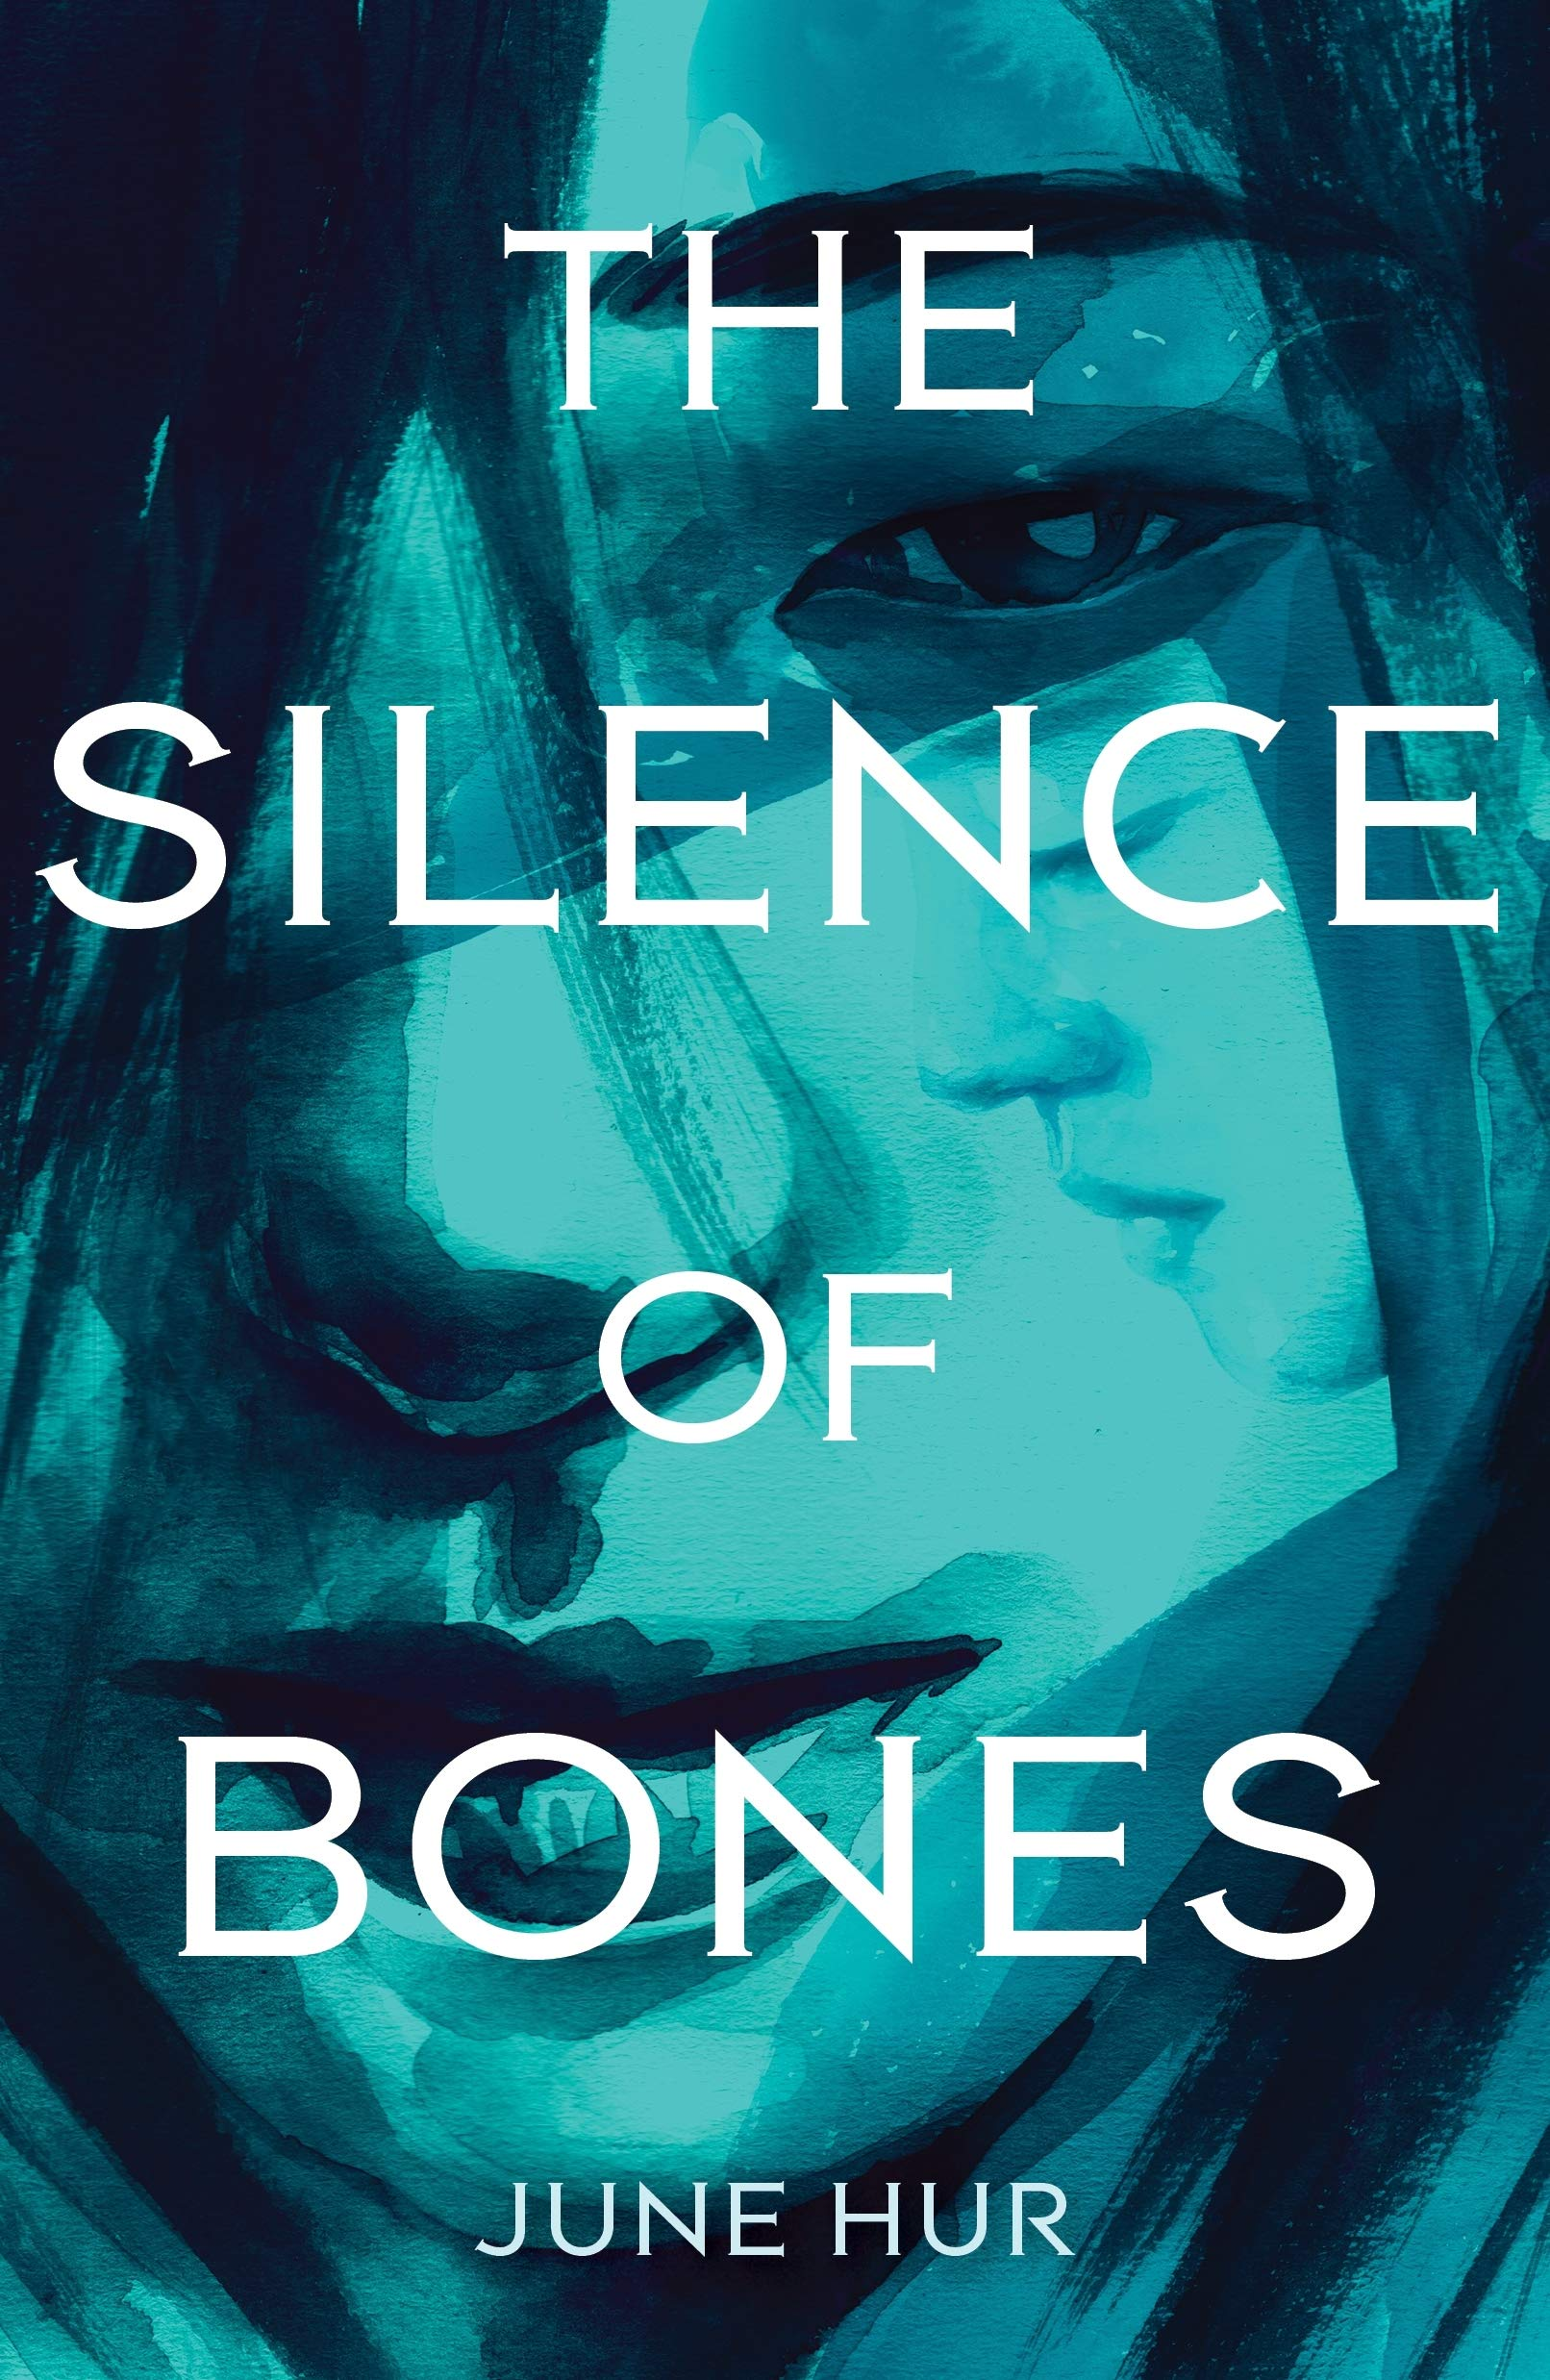 Amazon.com: The Silence of Bones (9781250229557): Hur, June: Books